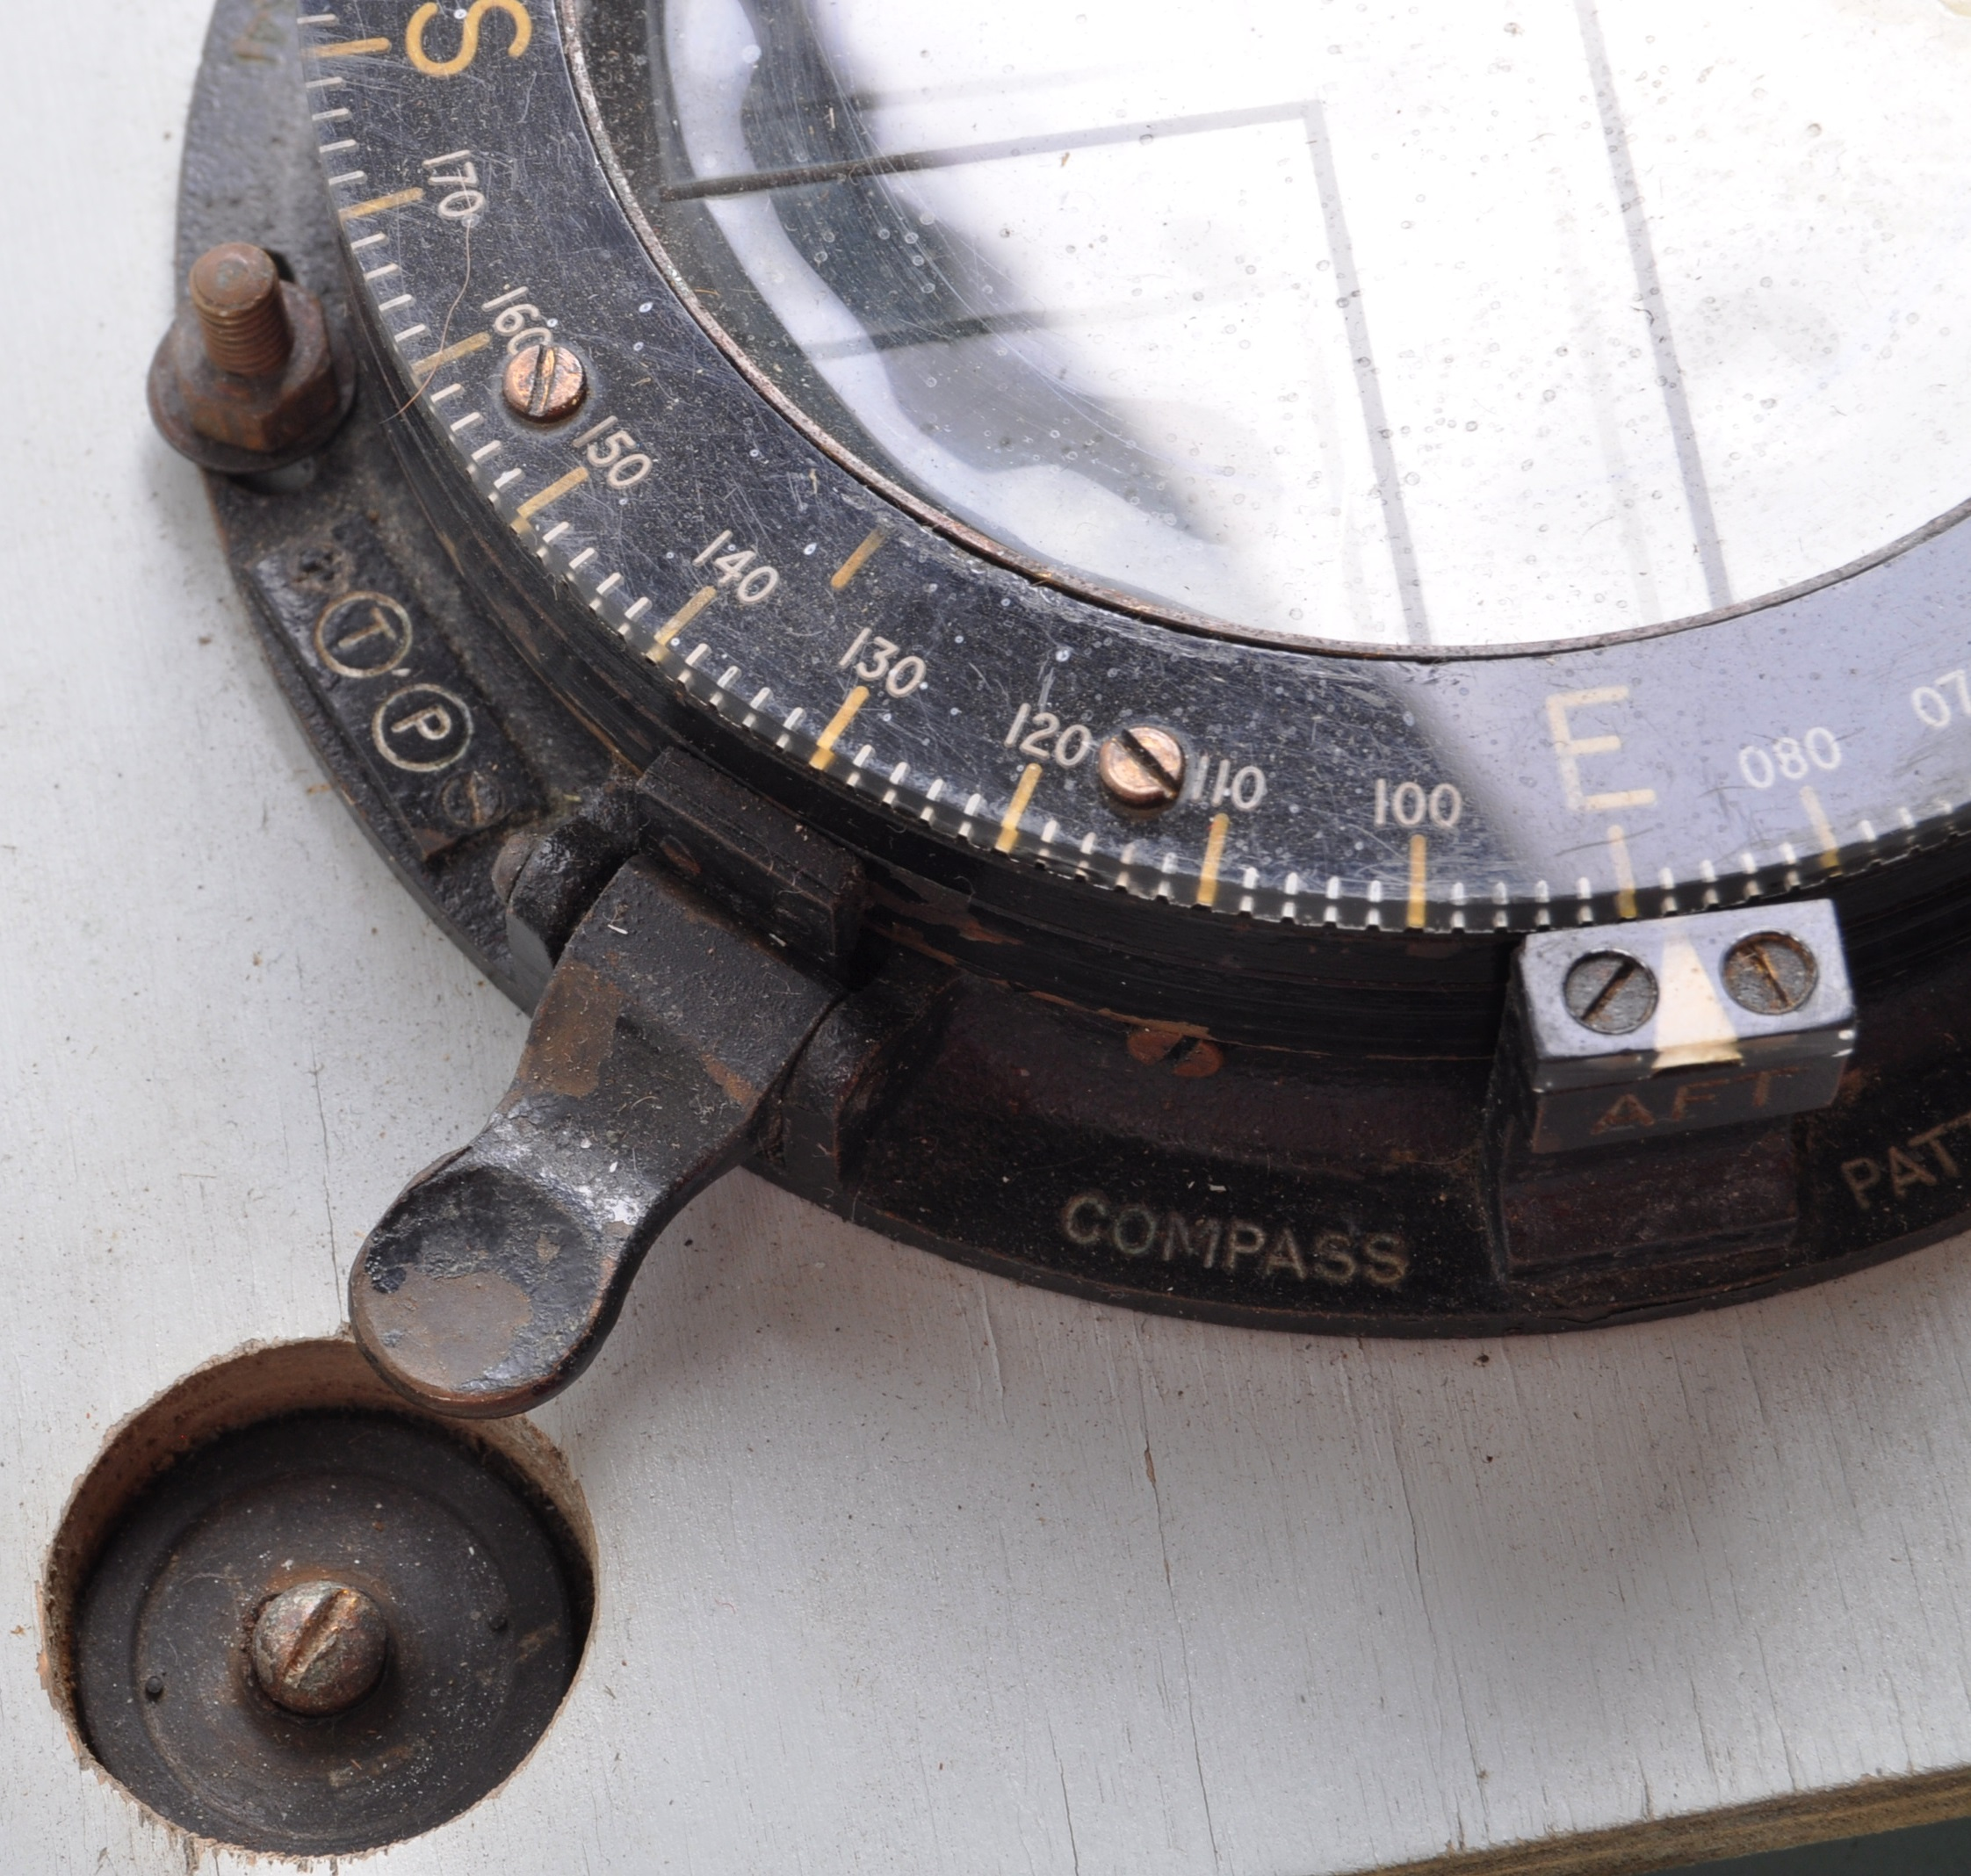 SCARCE WWII SPECIAL OPERATIONS ' CANOE COMPASS ' SLEEPING BEAUTY - Image 7 of 8